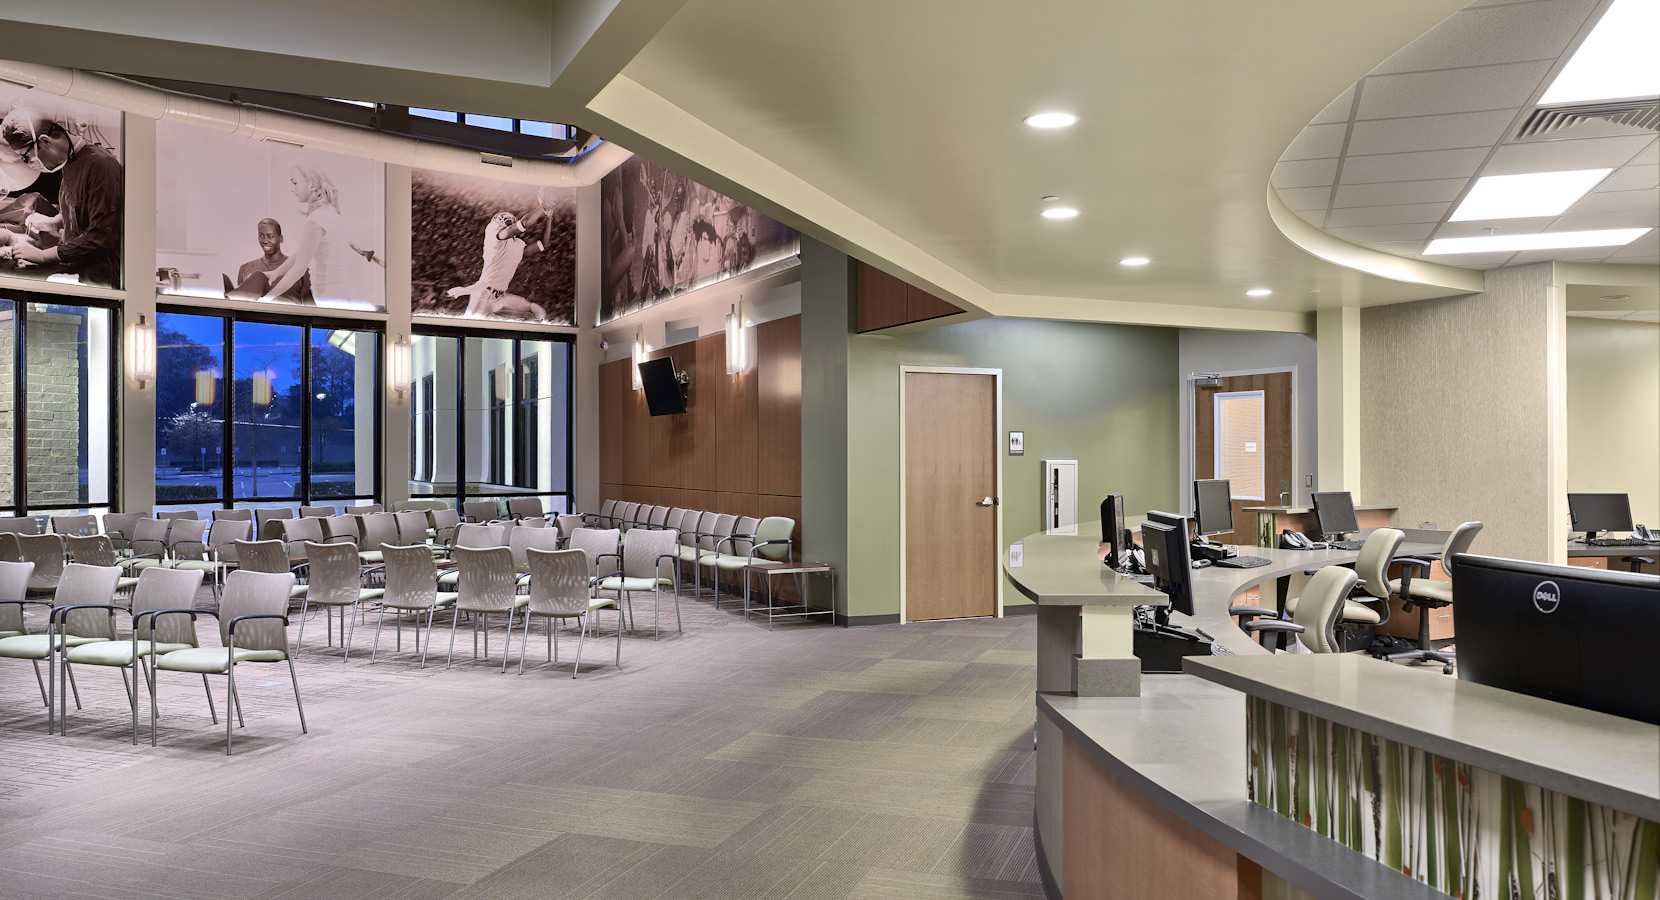 commercial interior design southern orthopaedic surgeons, montgomery, alabama ZIHYZEQ